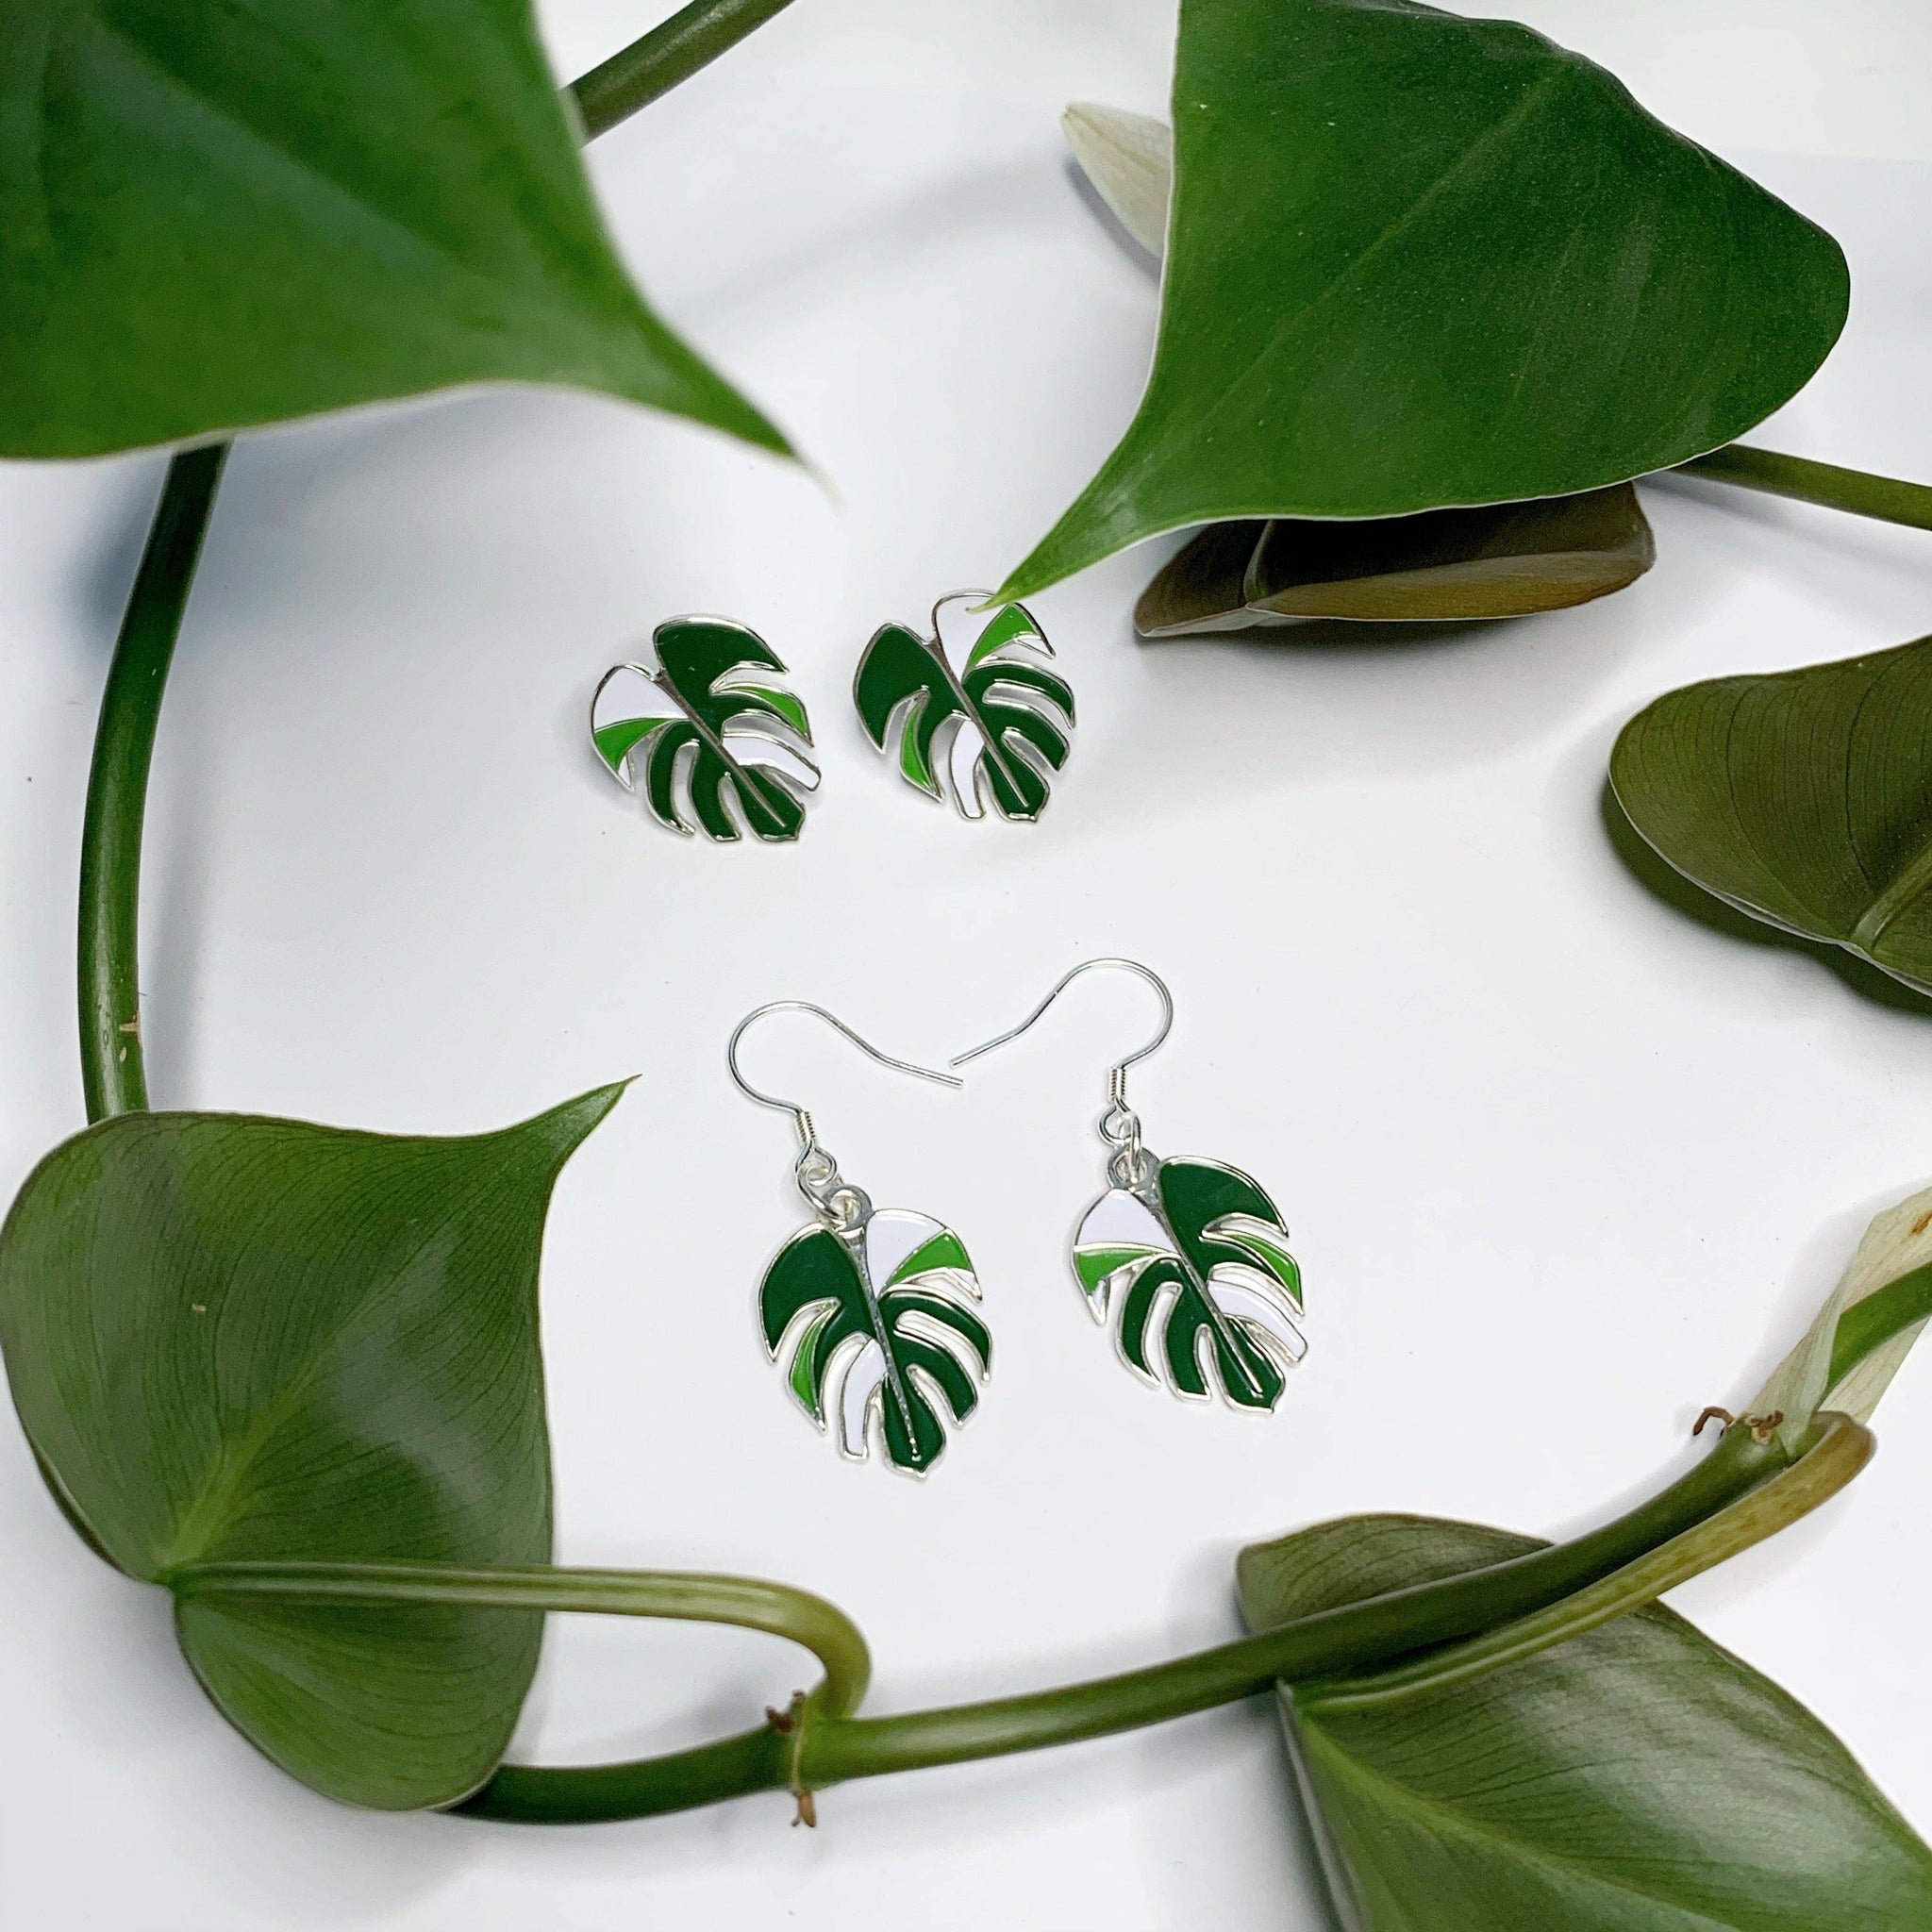 Variegated Monstera Earrings - Luxe Foliage